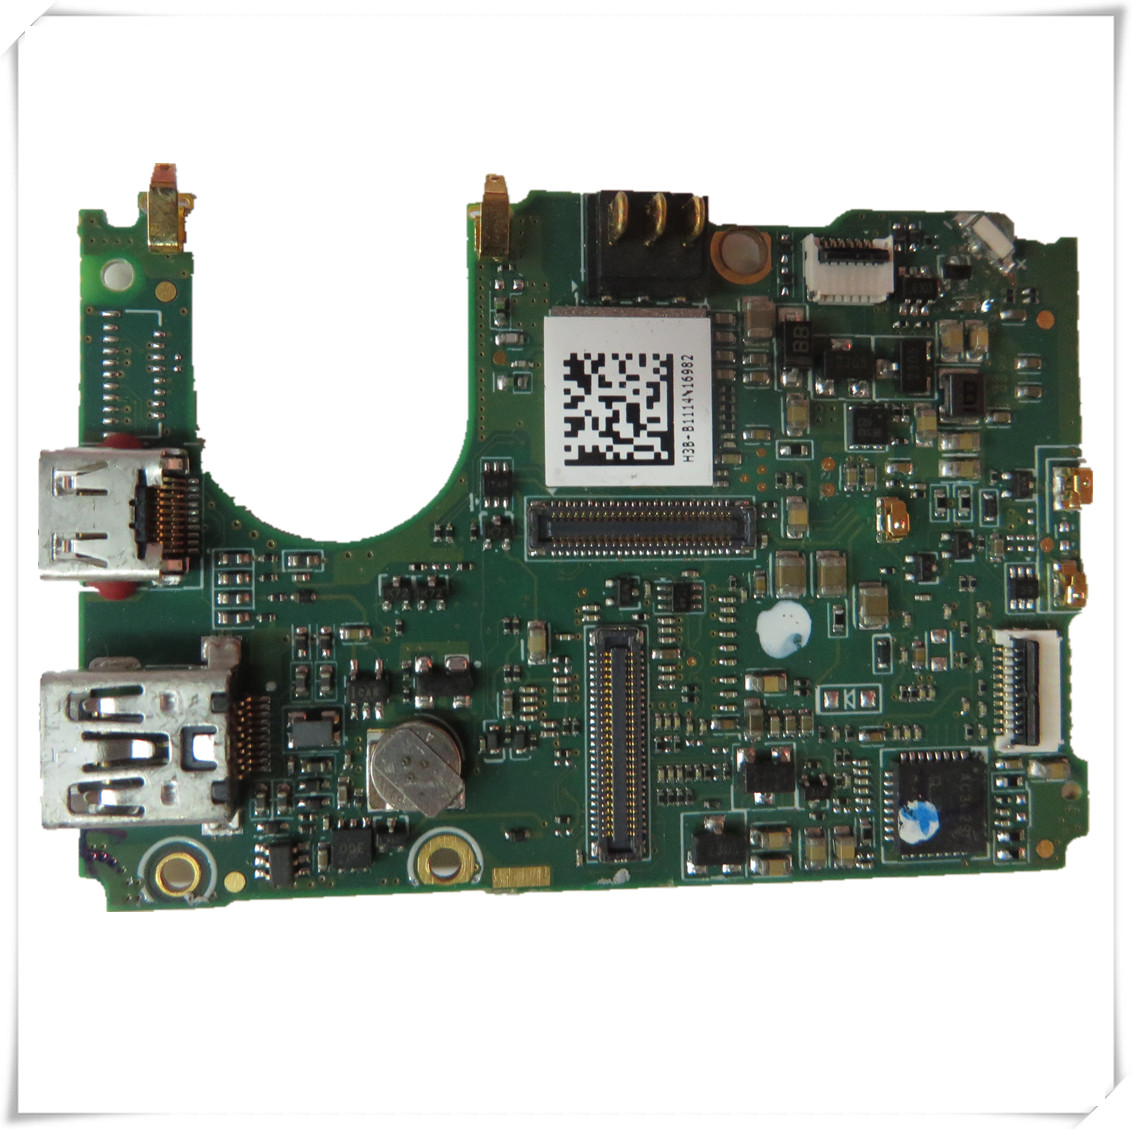 95%new Main Board Motherboard Pcb For Gopro Hero 3+ Black Edition Video new main circuit board motherboard pcb repair parts for sony dsc rx100m2 rx100ii rx100 2 digital camera